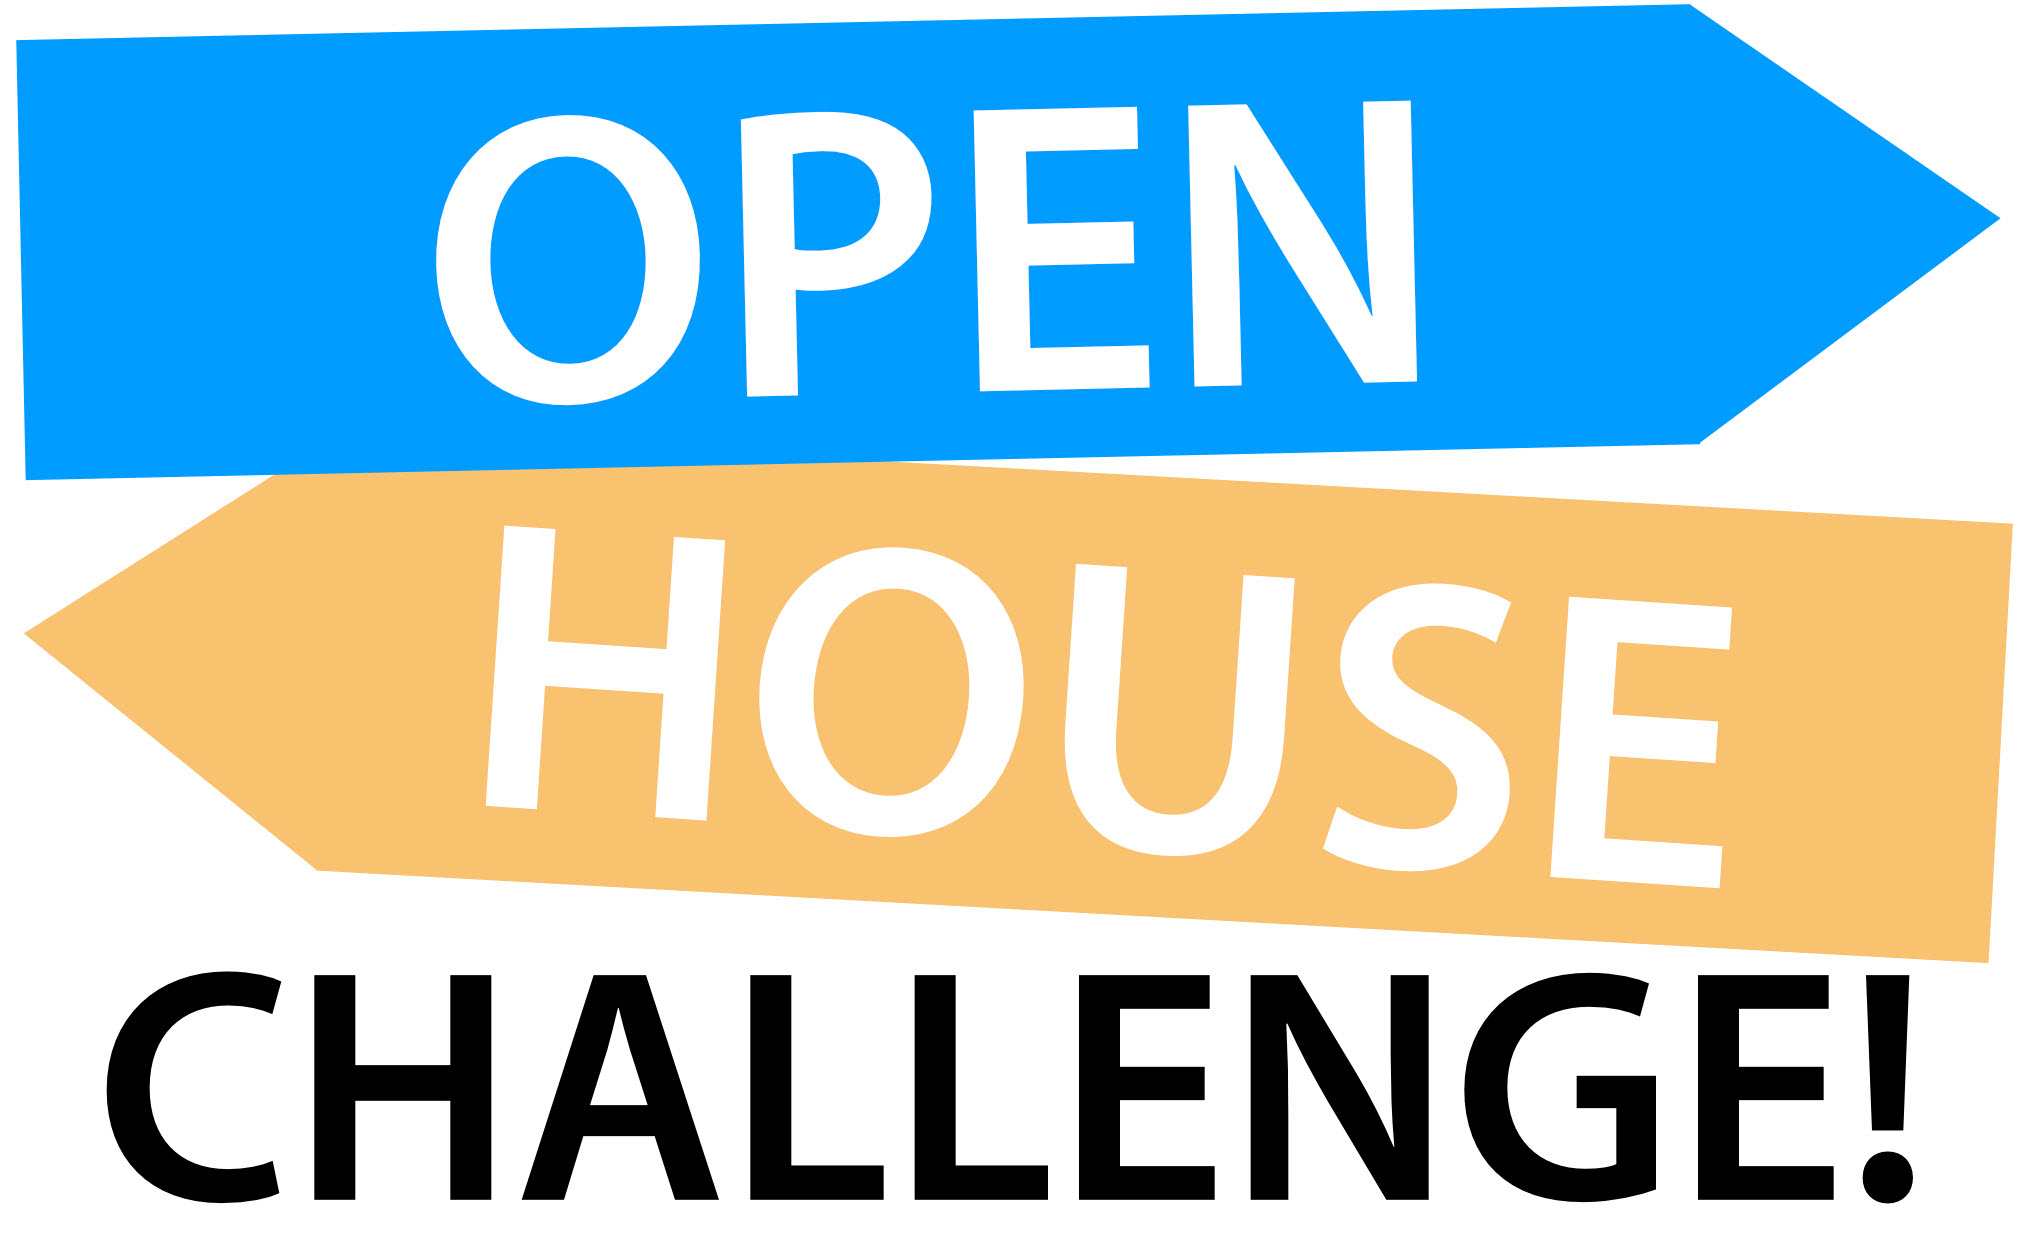 Open House Challenge